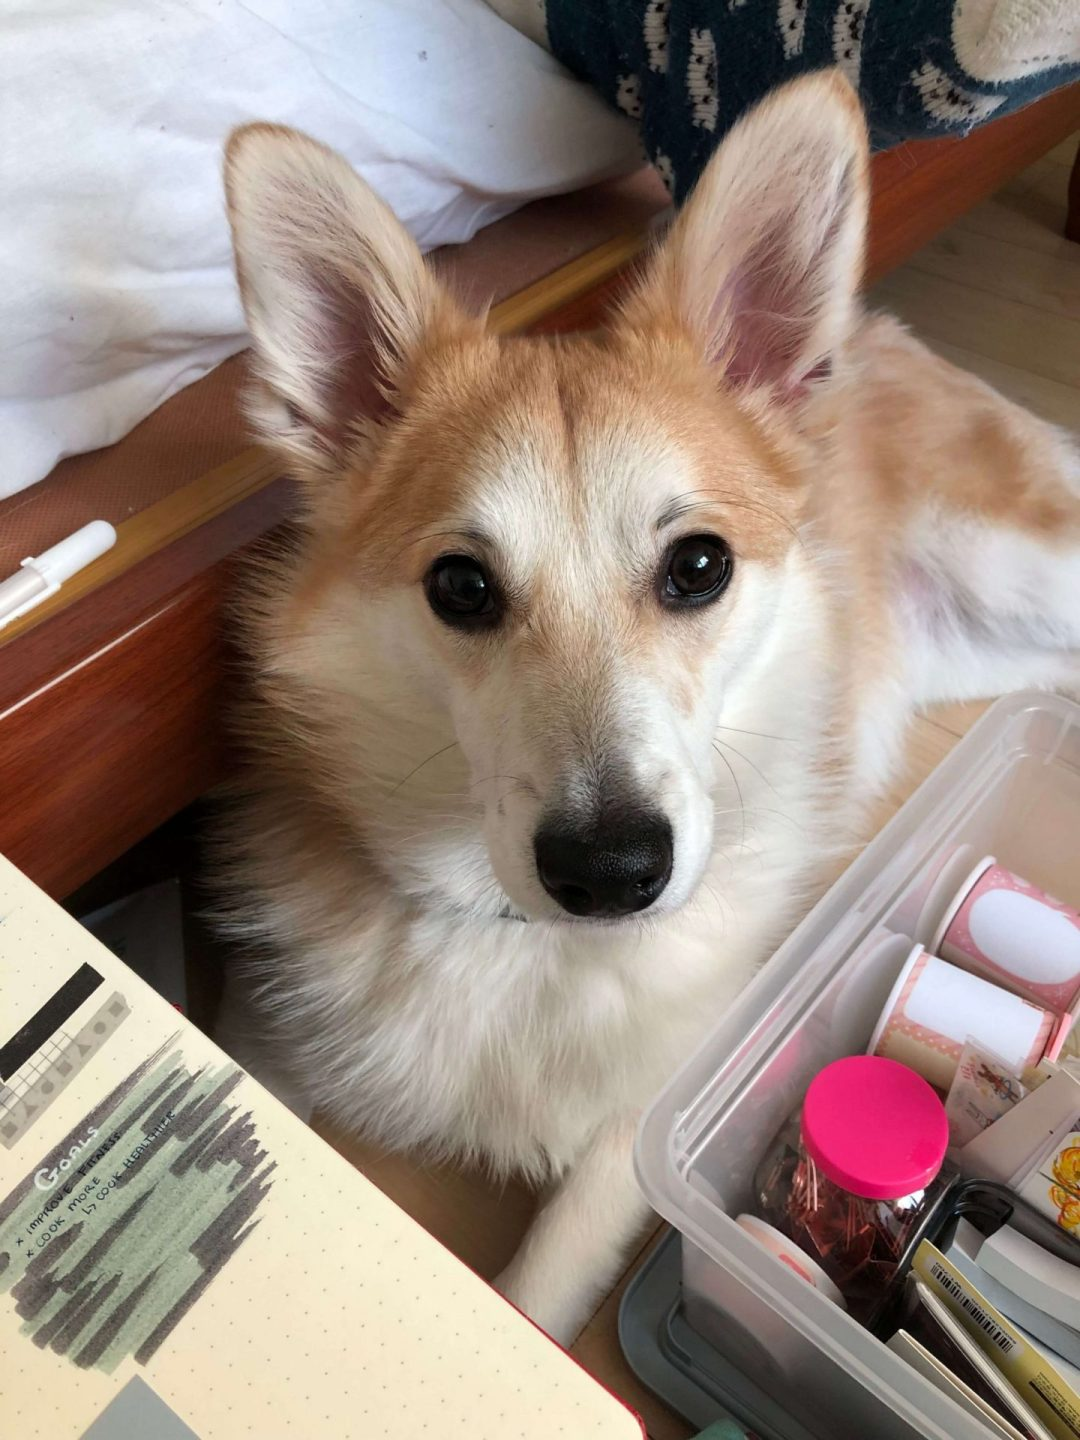 An image of Toast, Fii's corgi puppy, lying down with two boxes of stationery in front of him. He is looking directly at the camera.